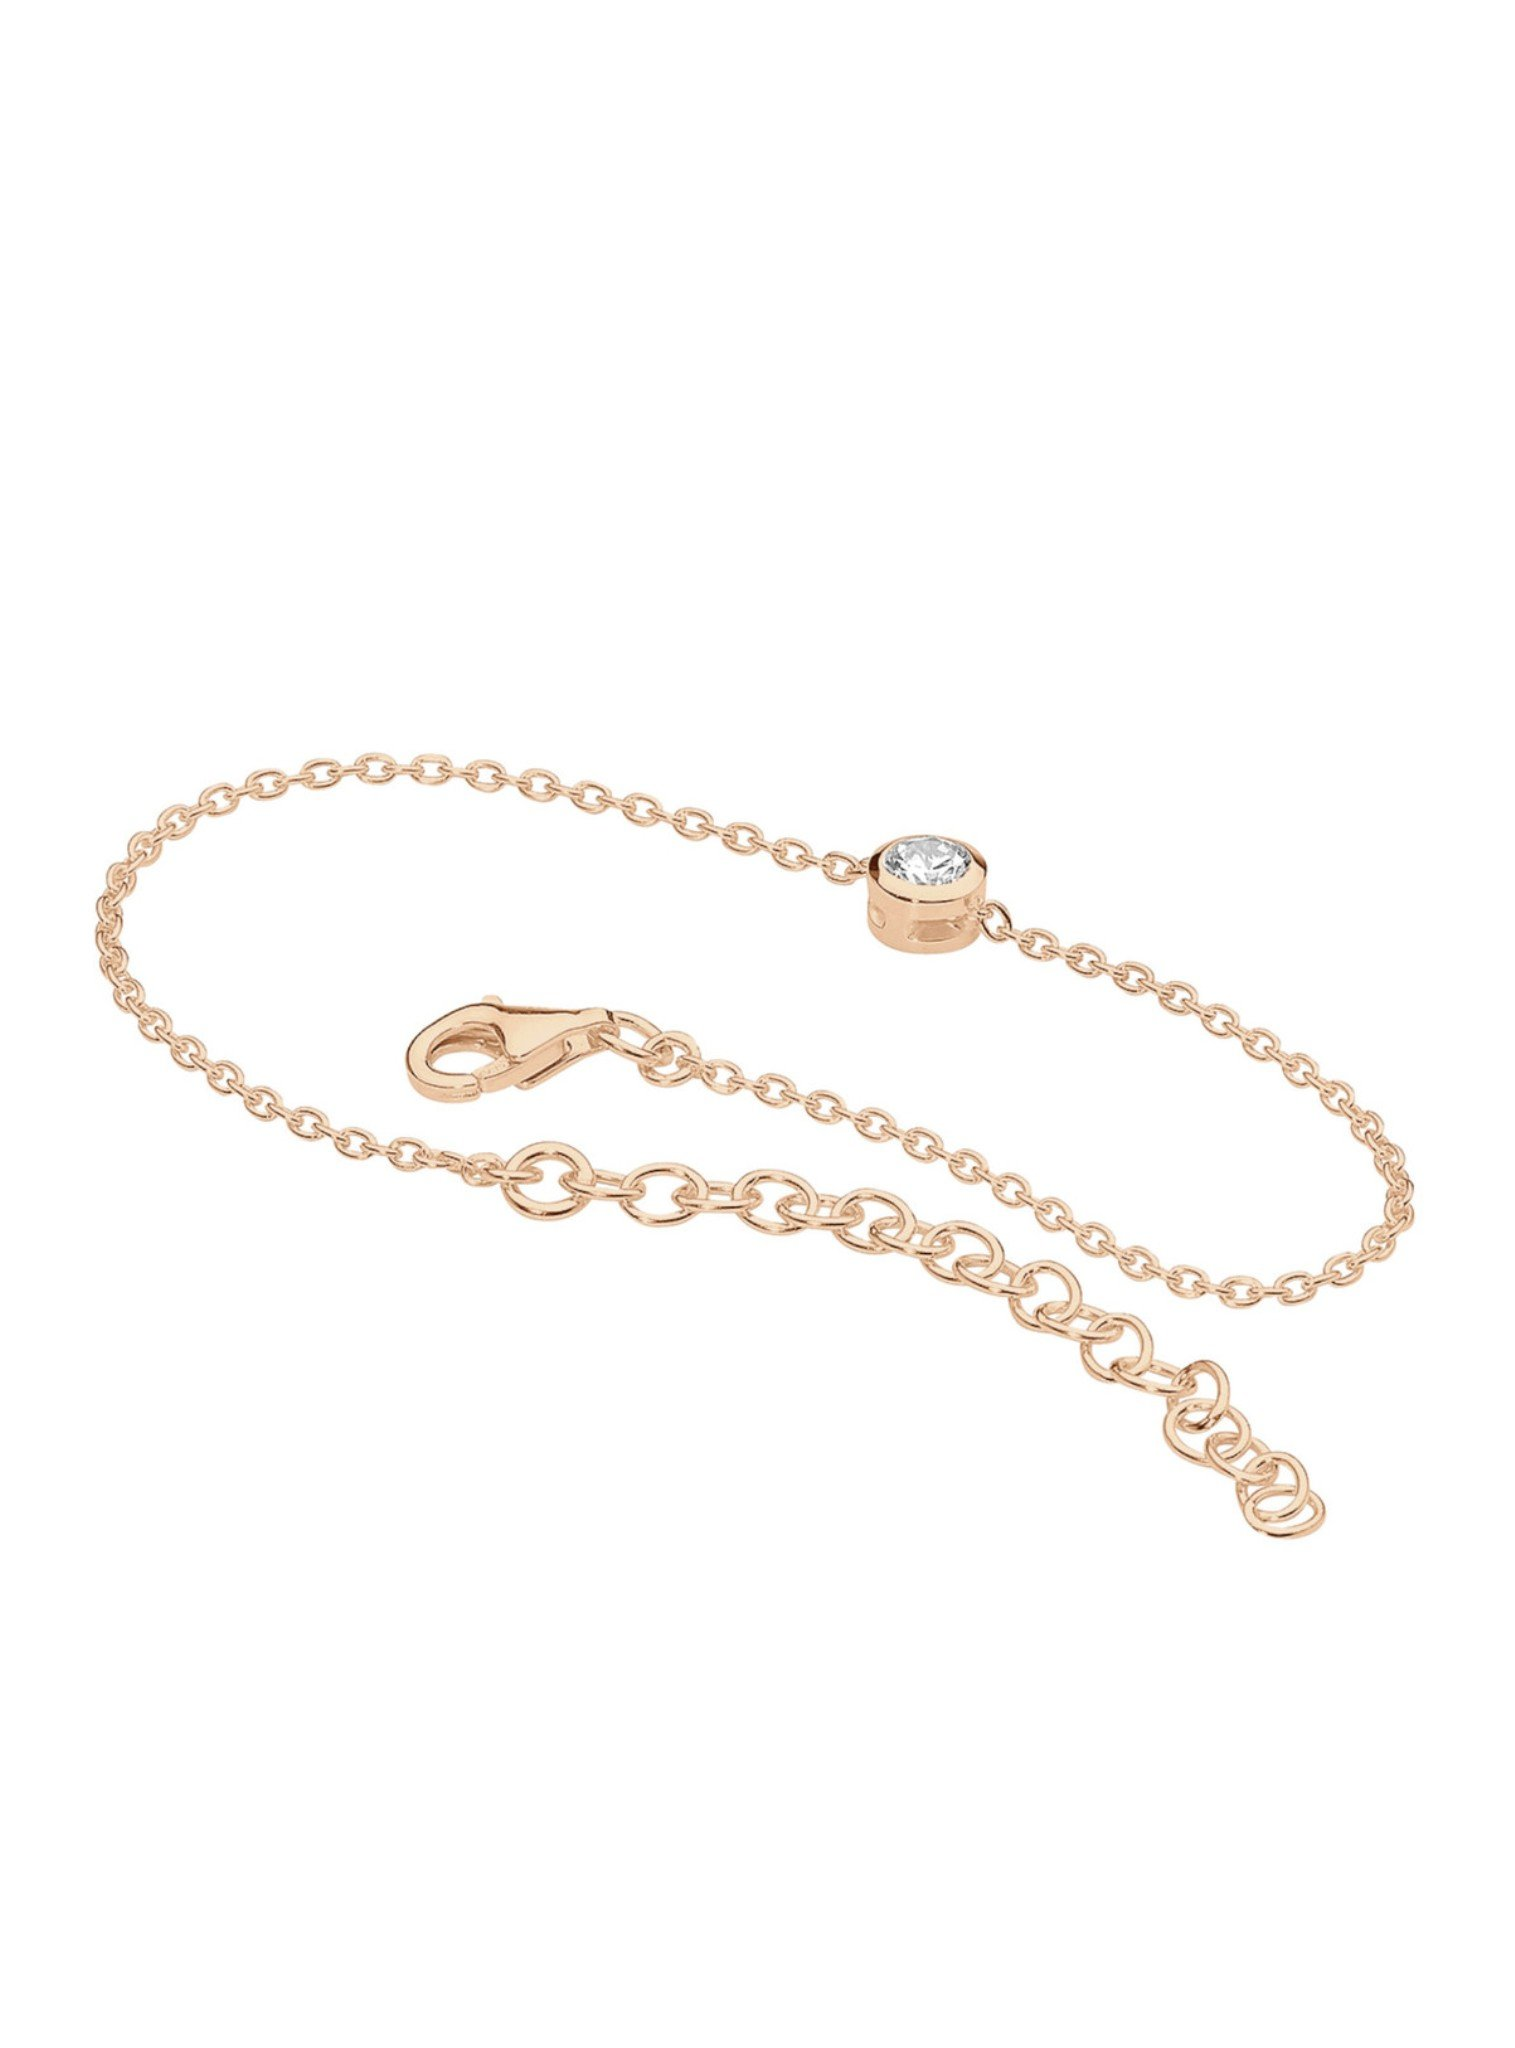 North Star 14k Rose Gold Plated Silver Bracelet with CZ